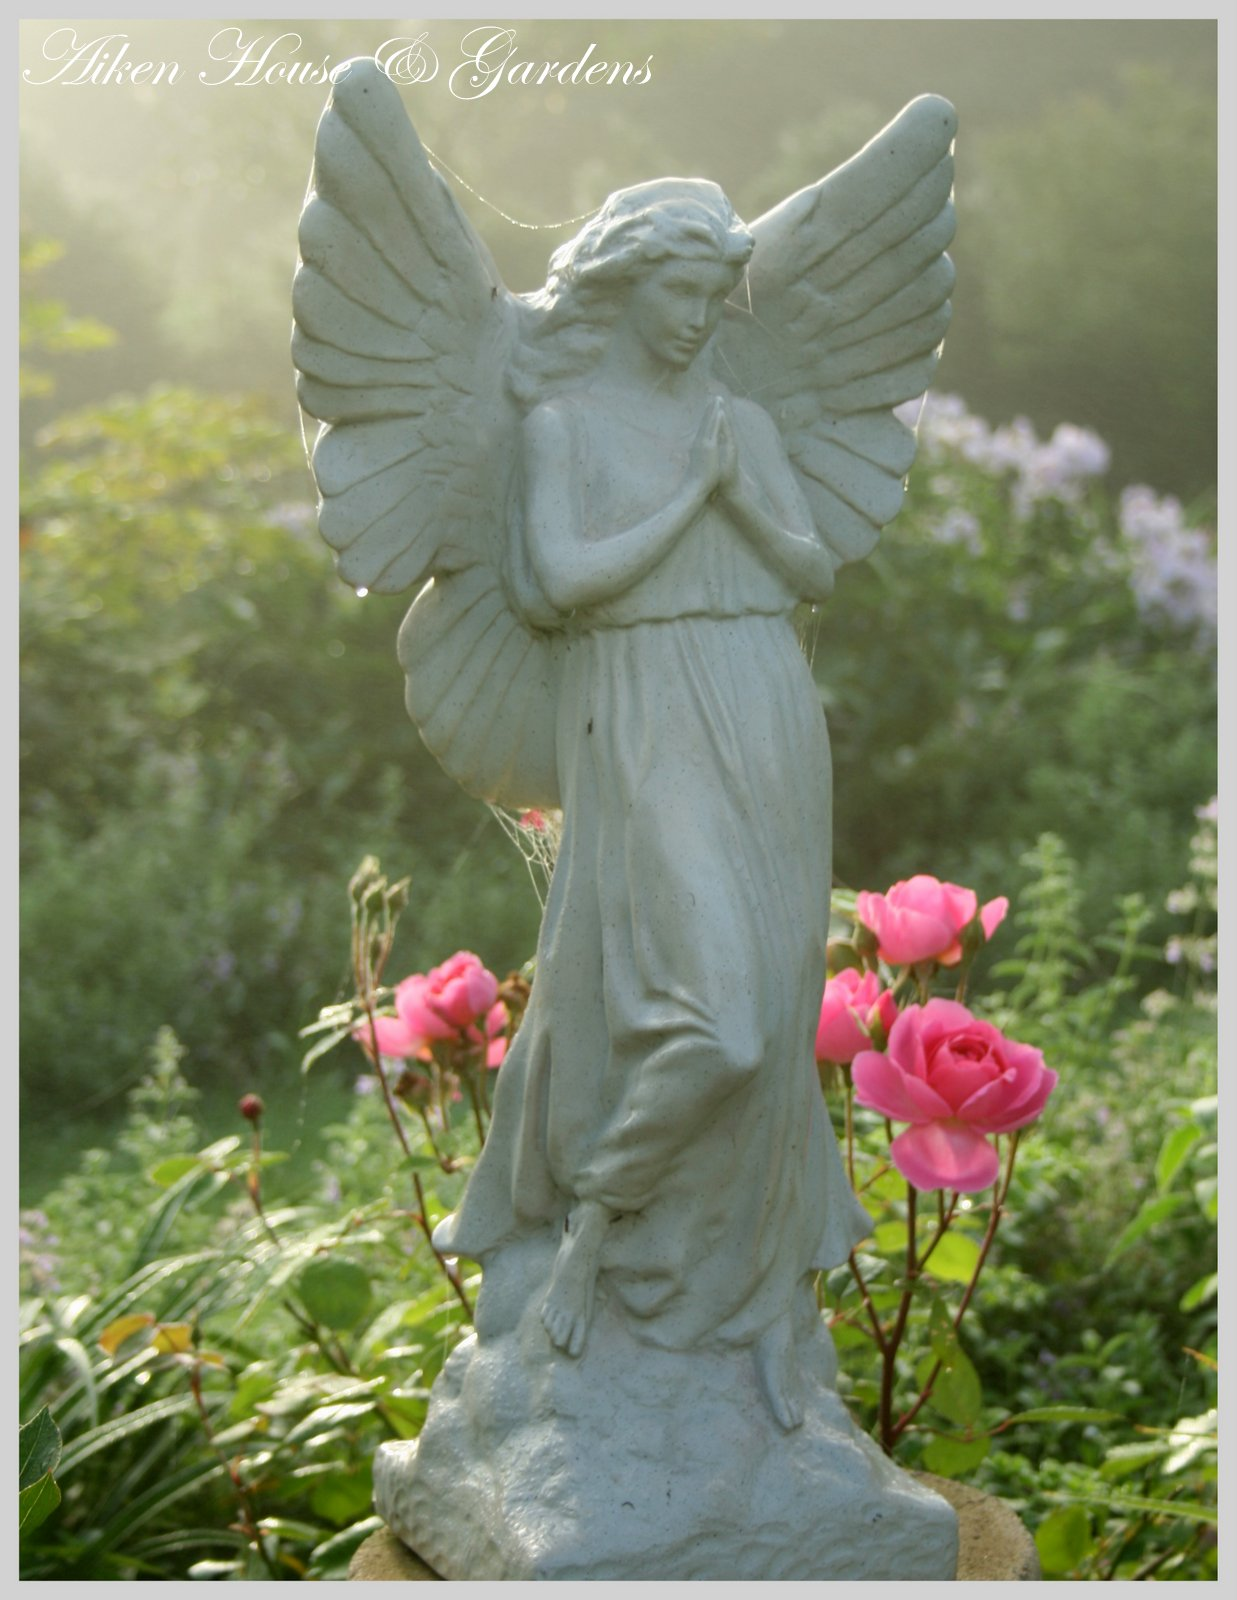 Garden Angel Aiken House And Gardens Garden Statuary